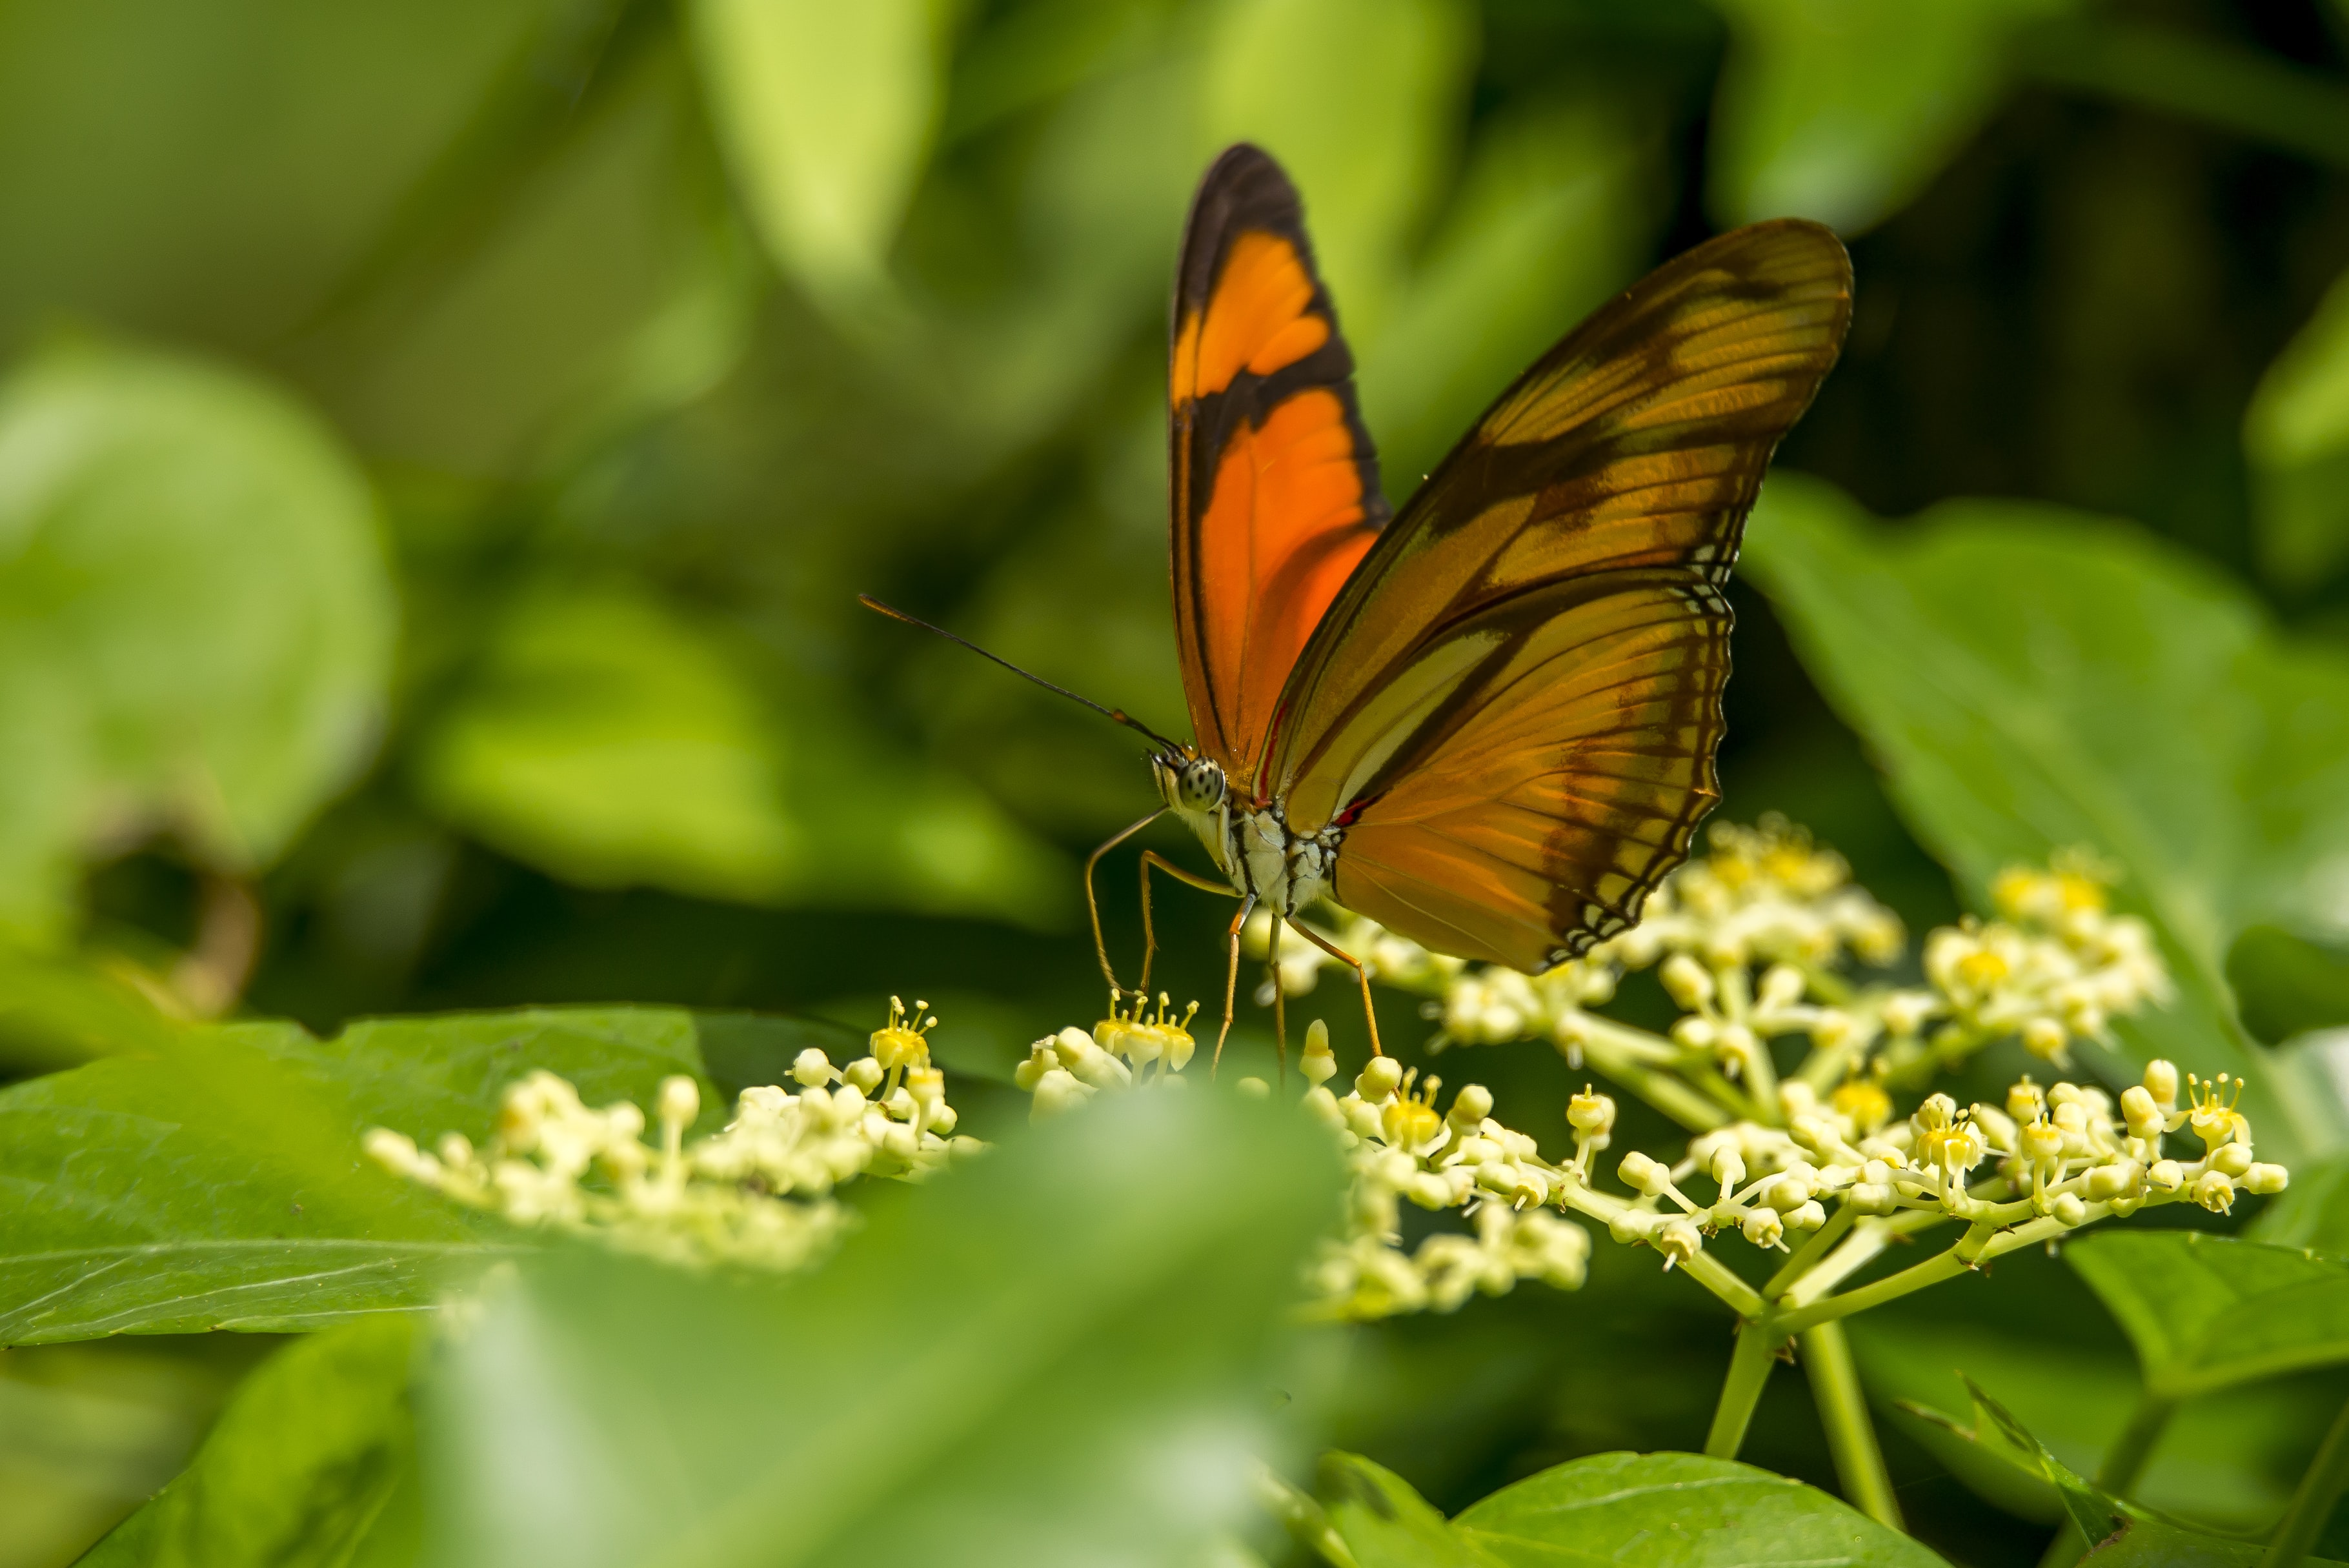 Colorful Butterfly Pictures Hq Download Free Images On Unsplash